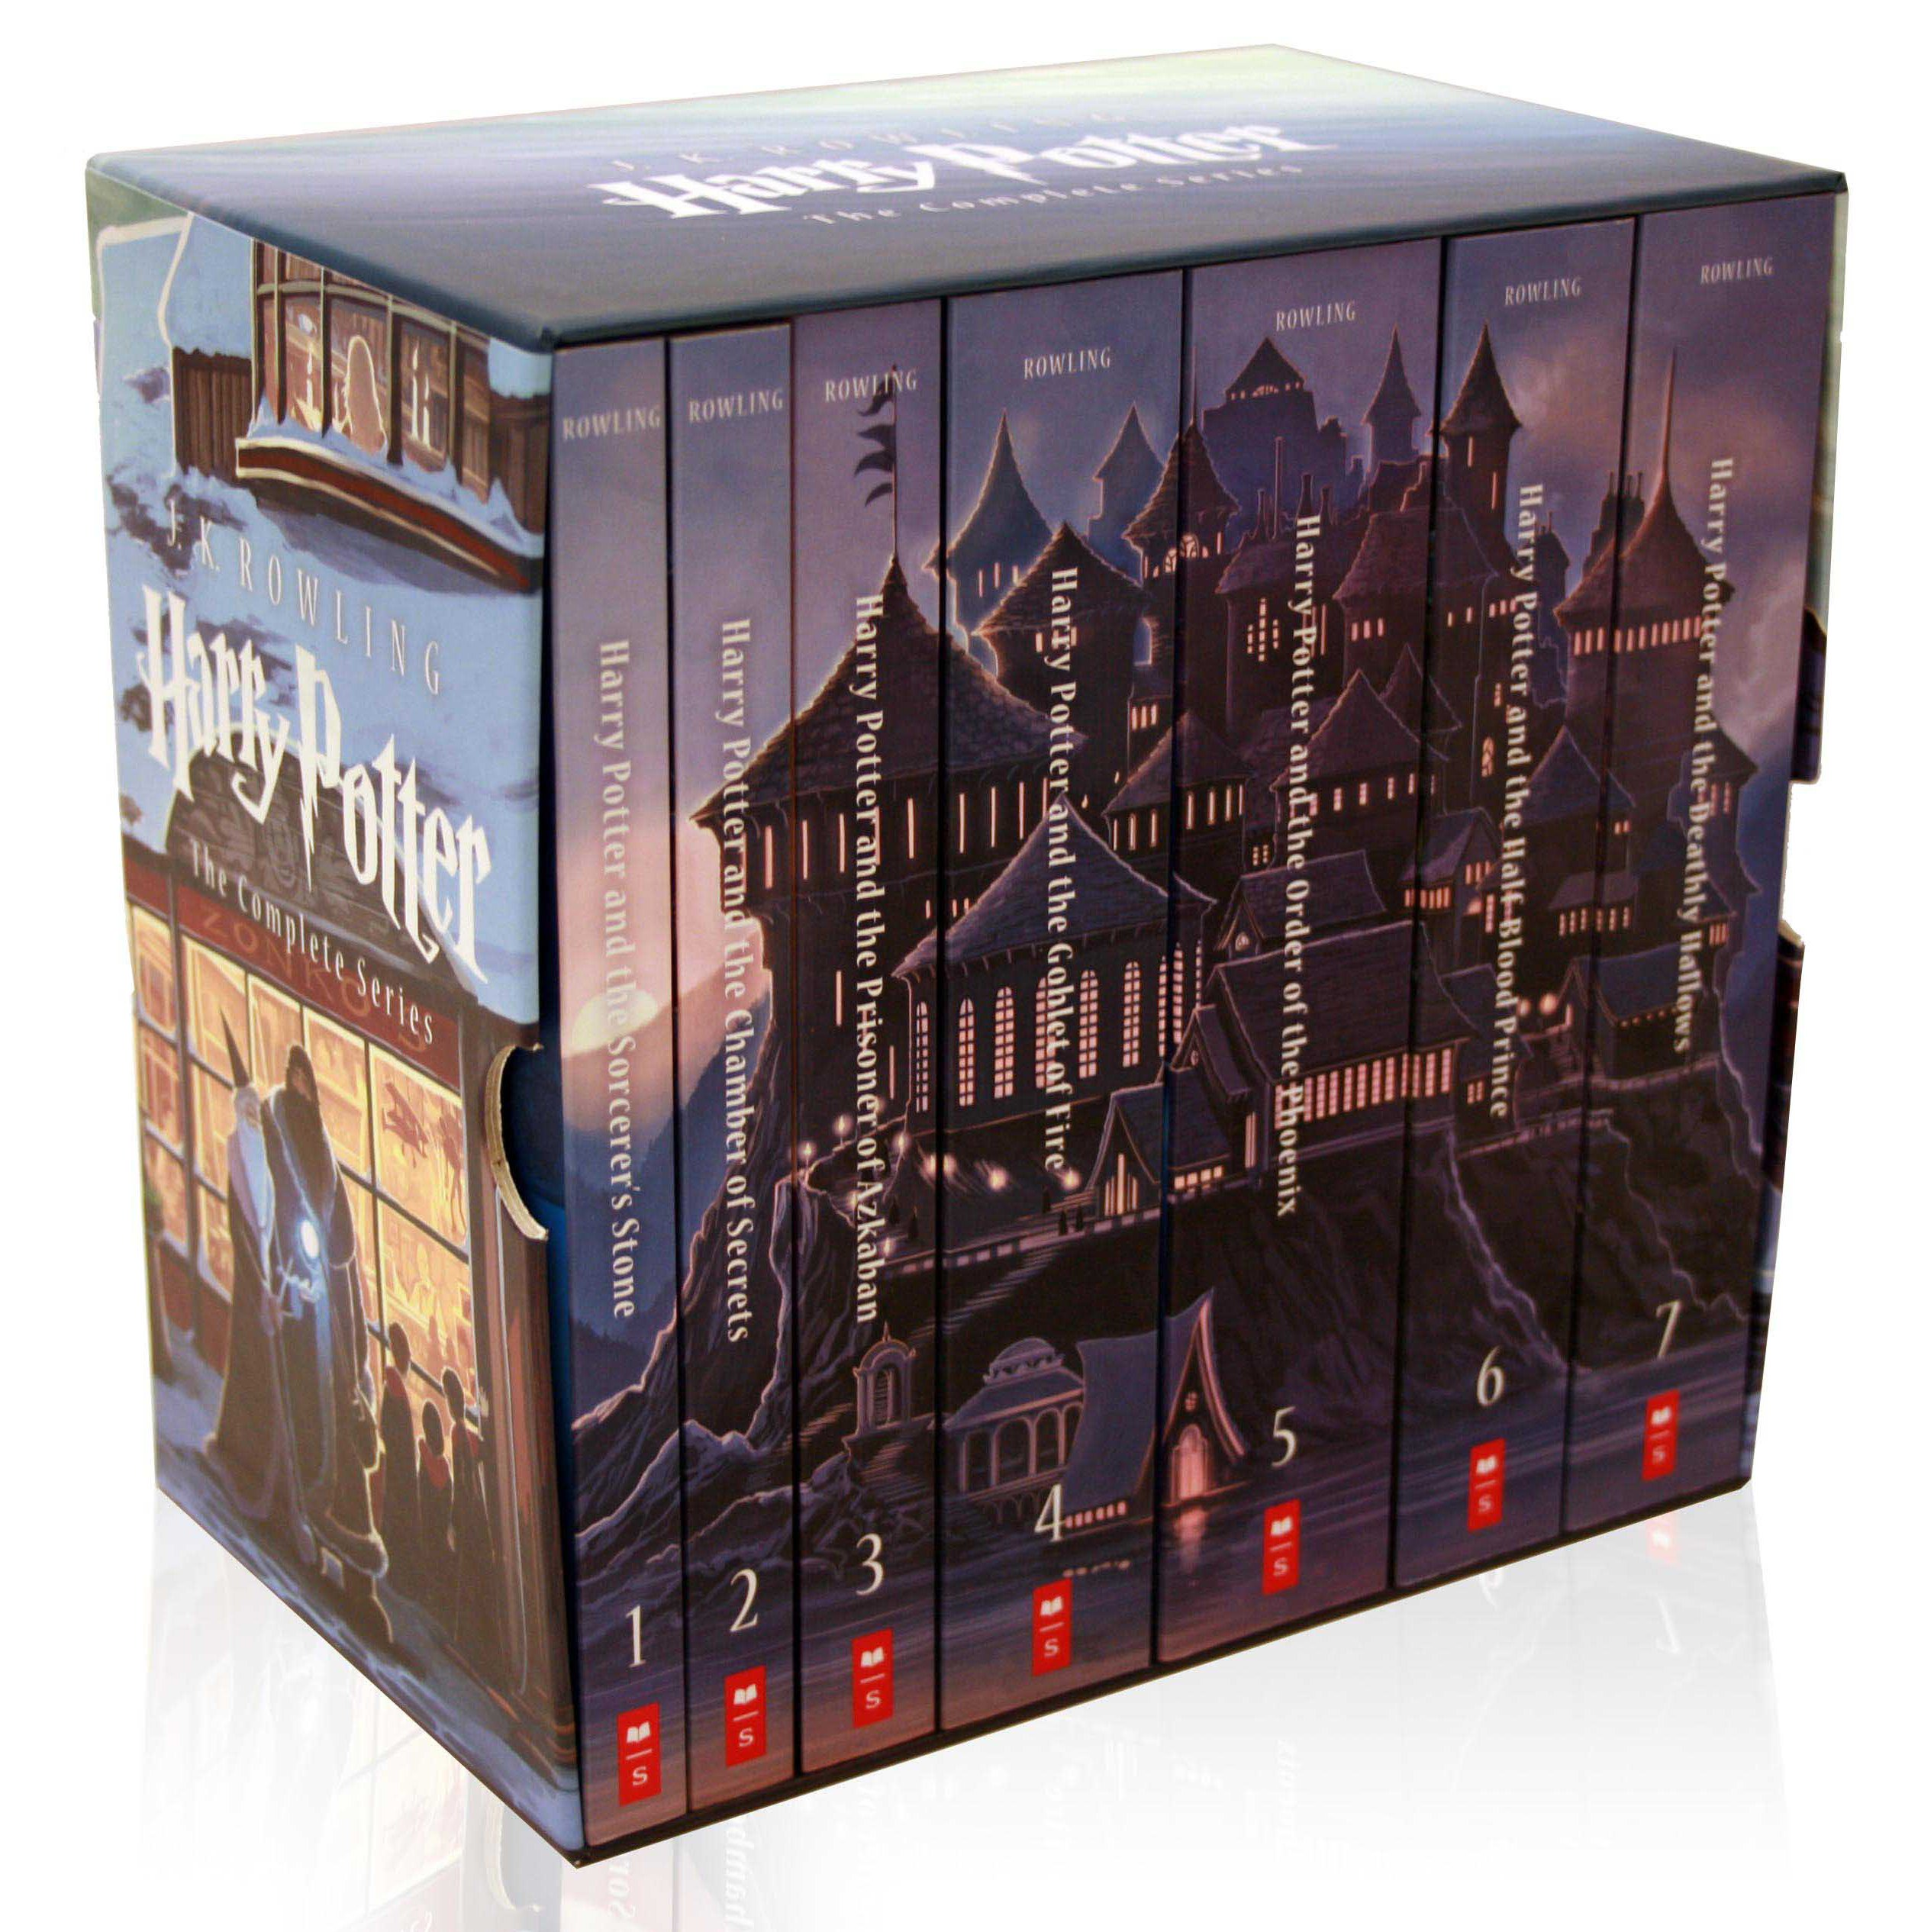 Image result for harry potter book sets